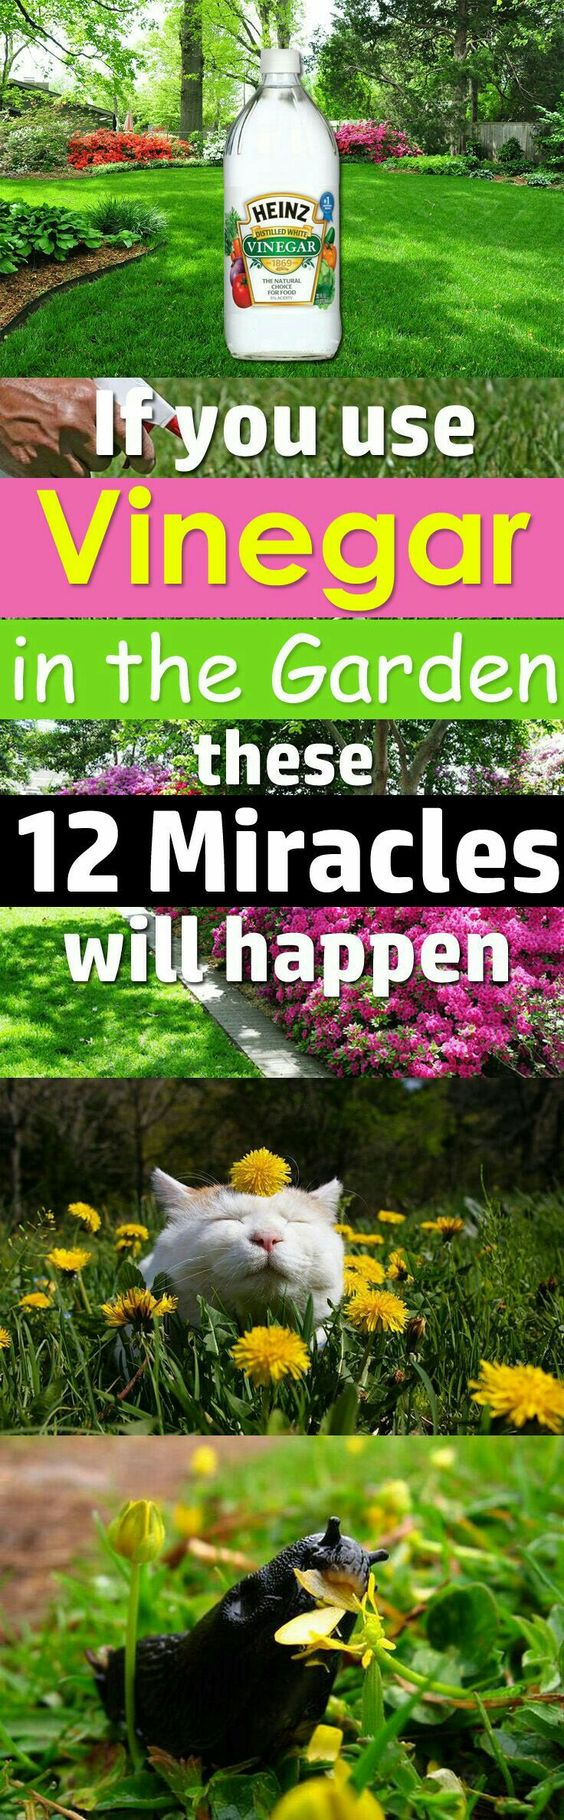 Miracle To Take Care Of The Garden For Pollinators To Pollinate Something T G I Pollinator